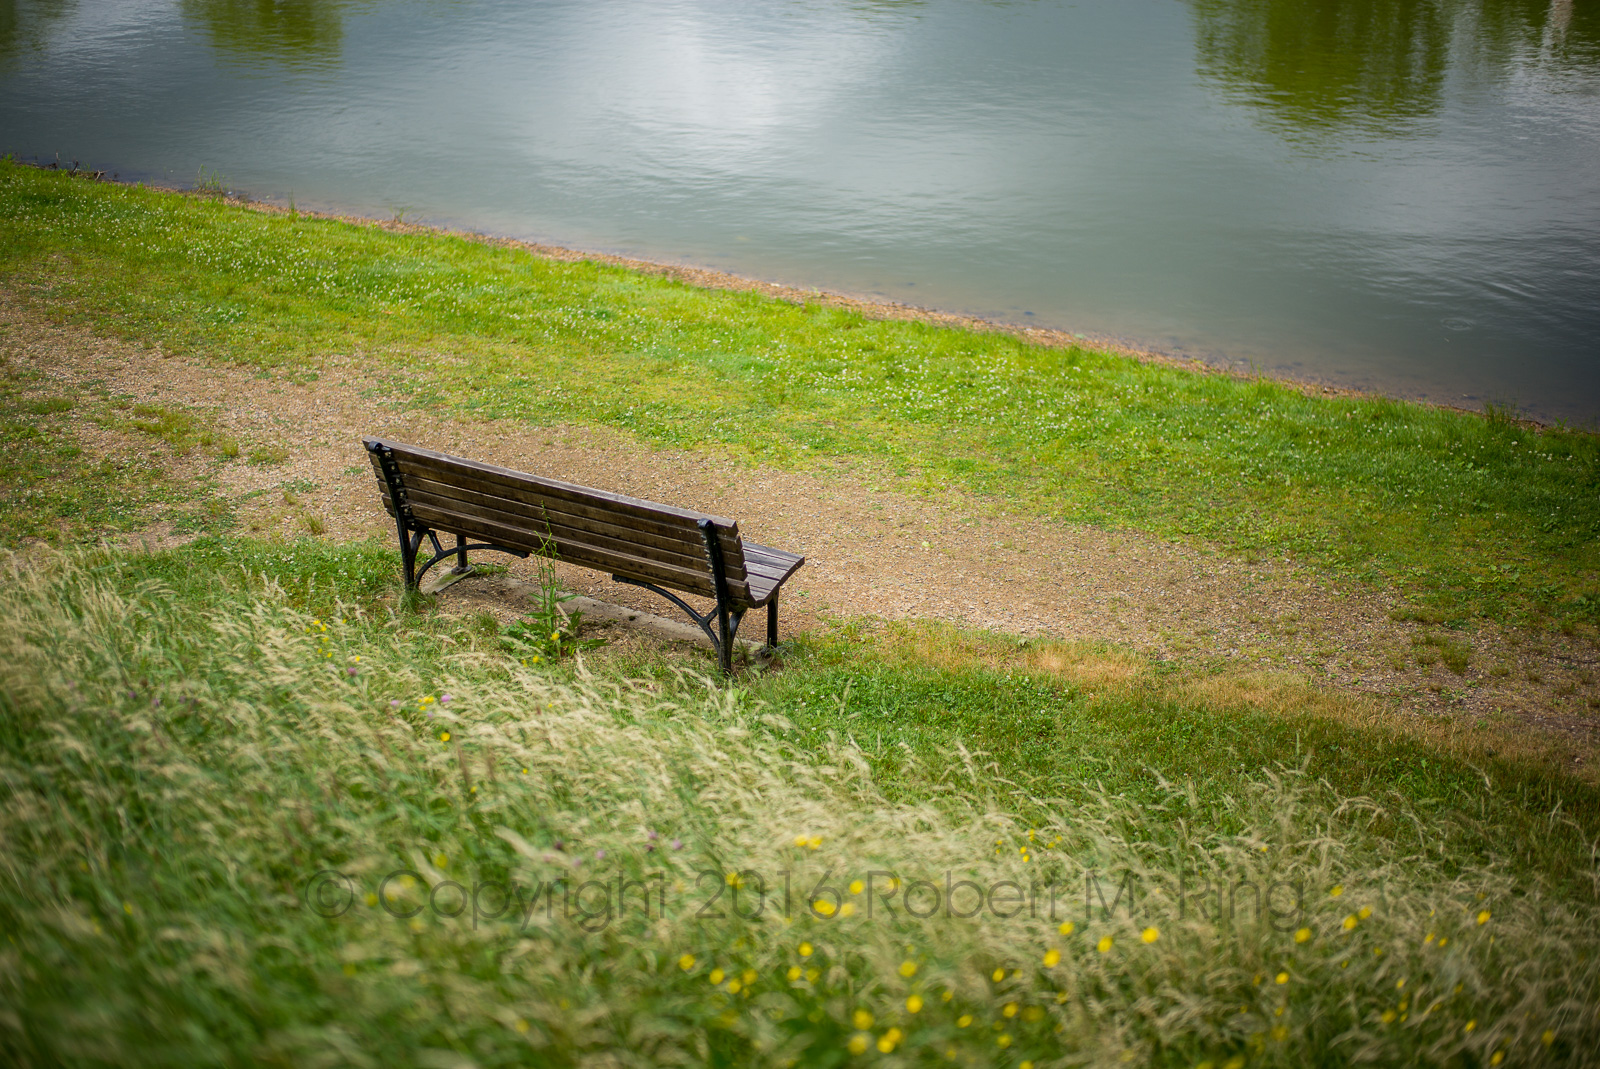 Waiting for someone to sit....